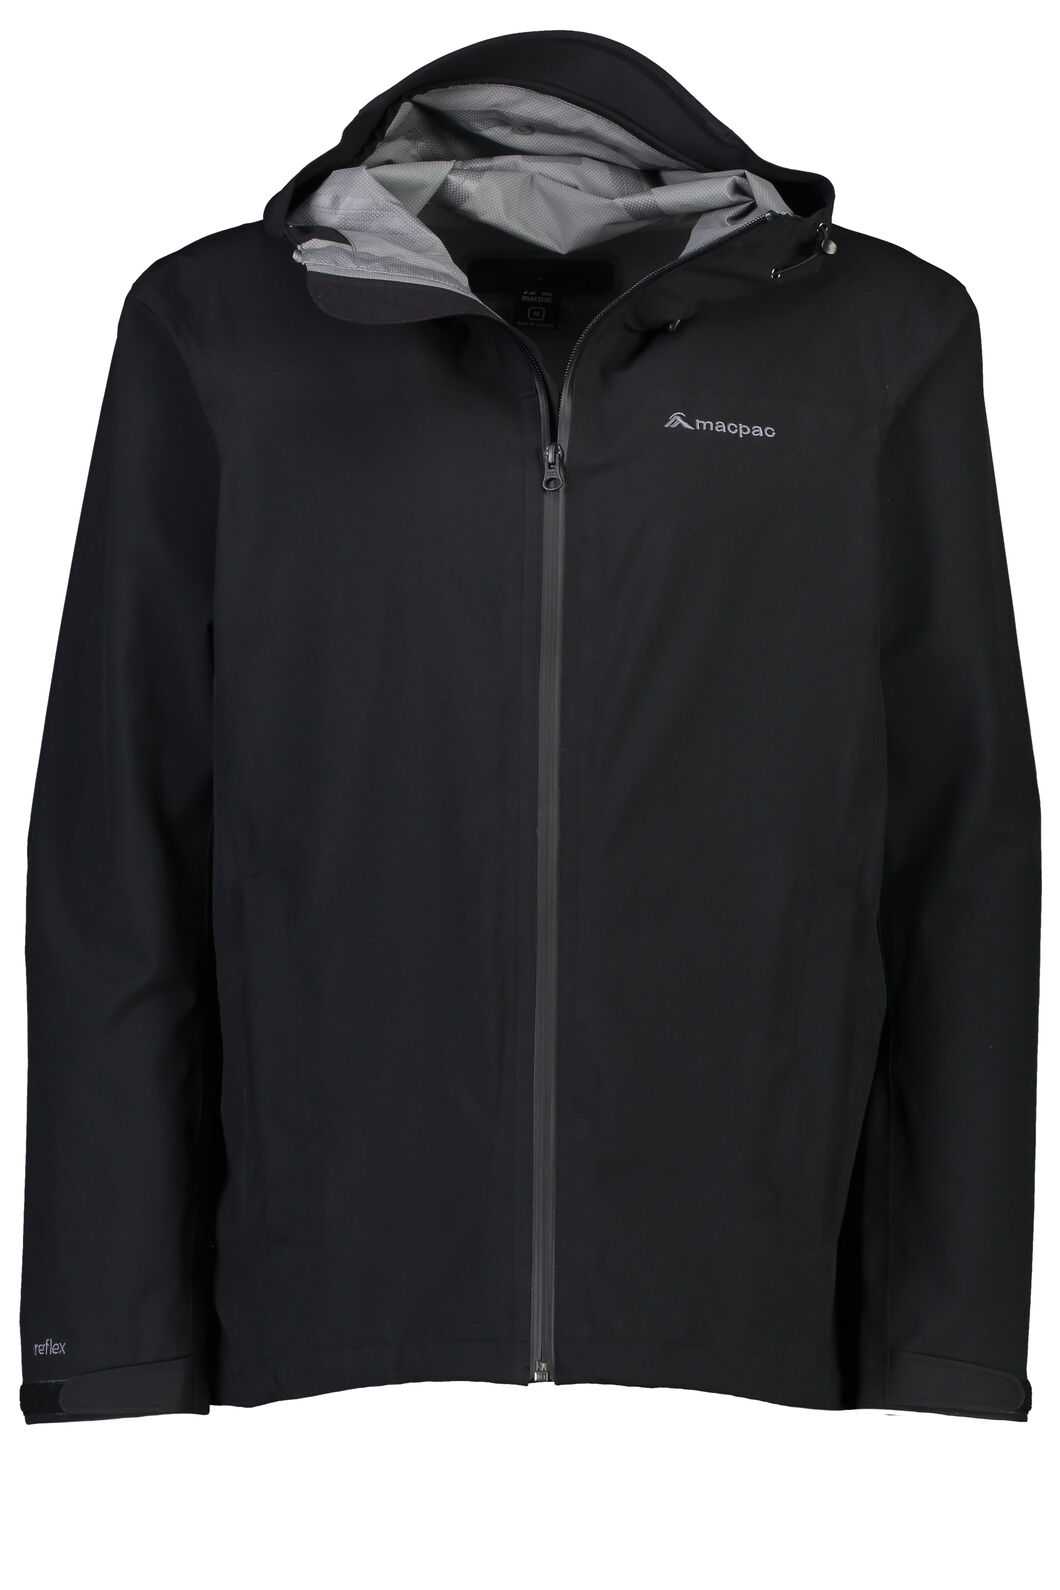 Dispatch Rain Jacket - Men's, Black, hi-res